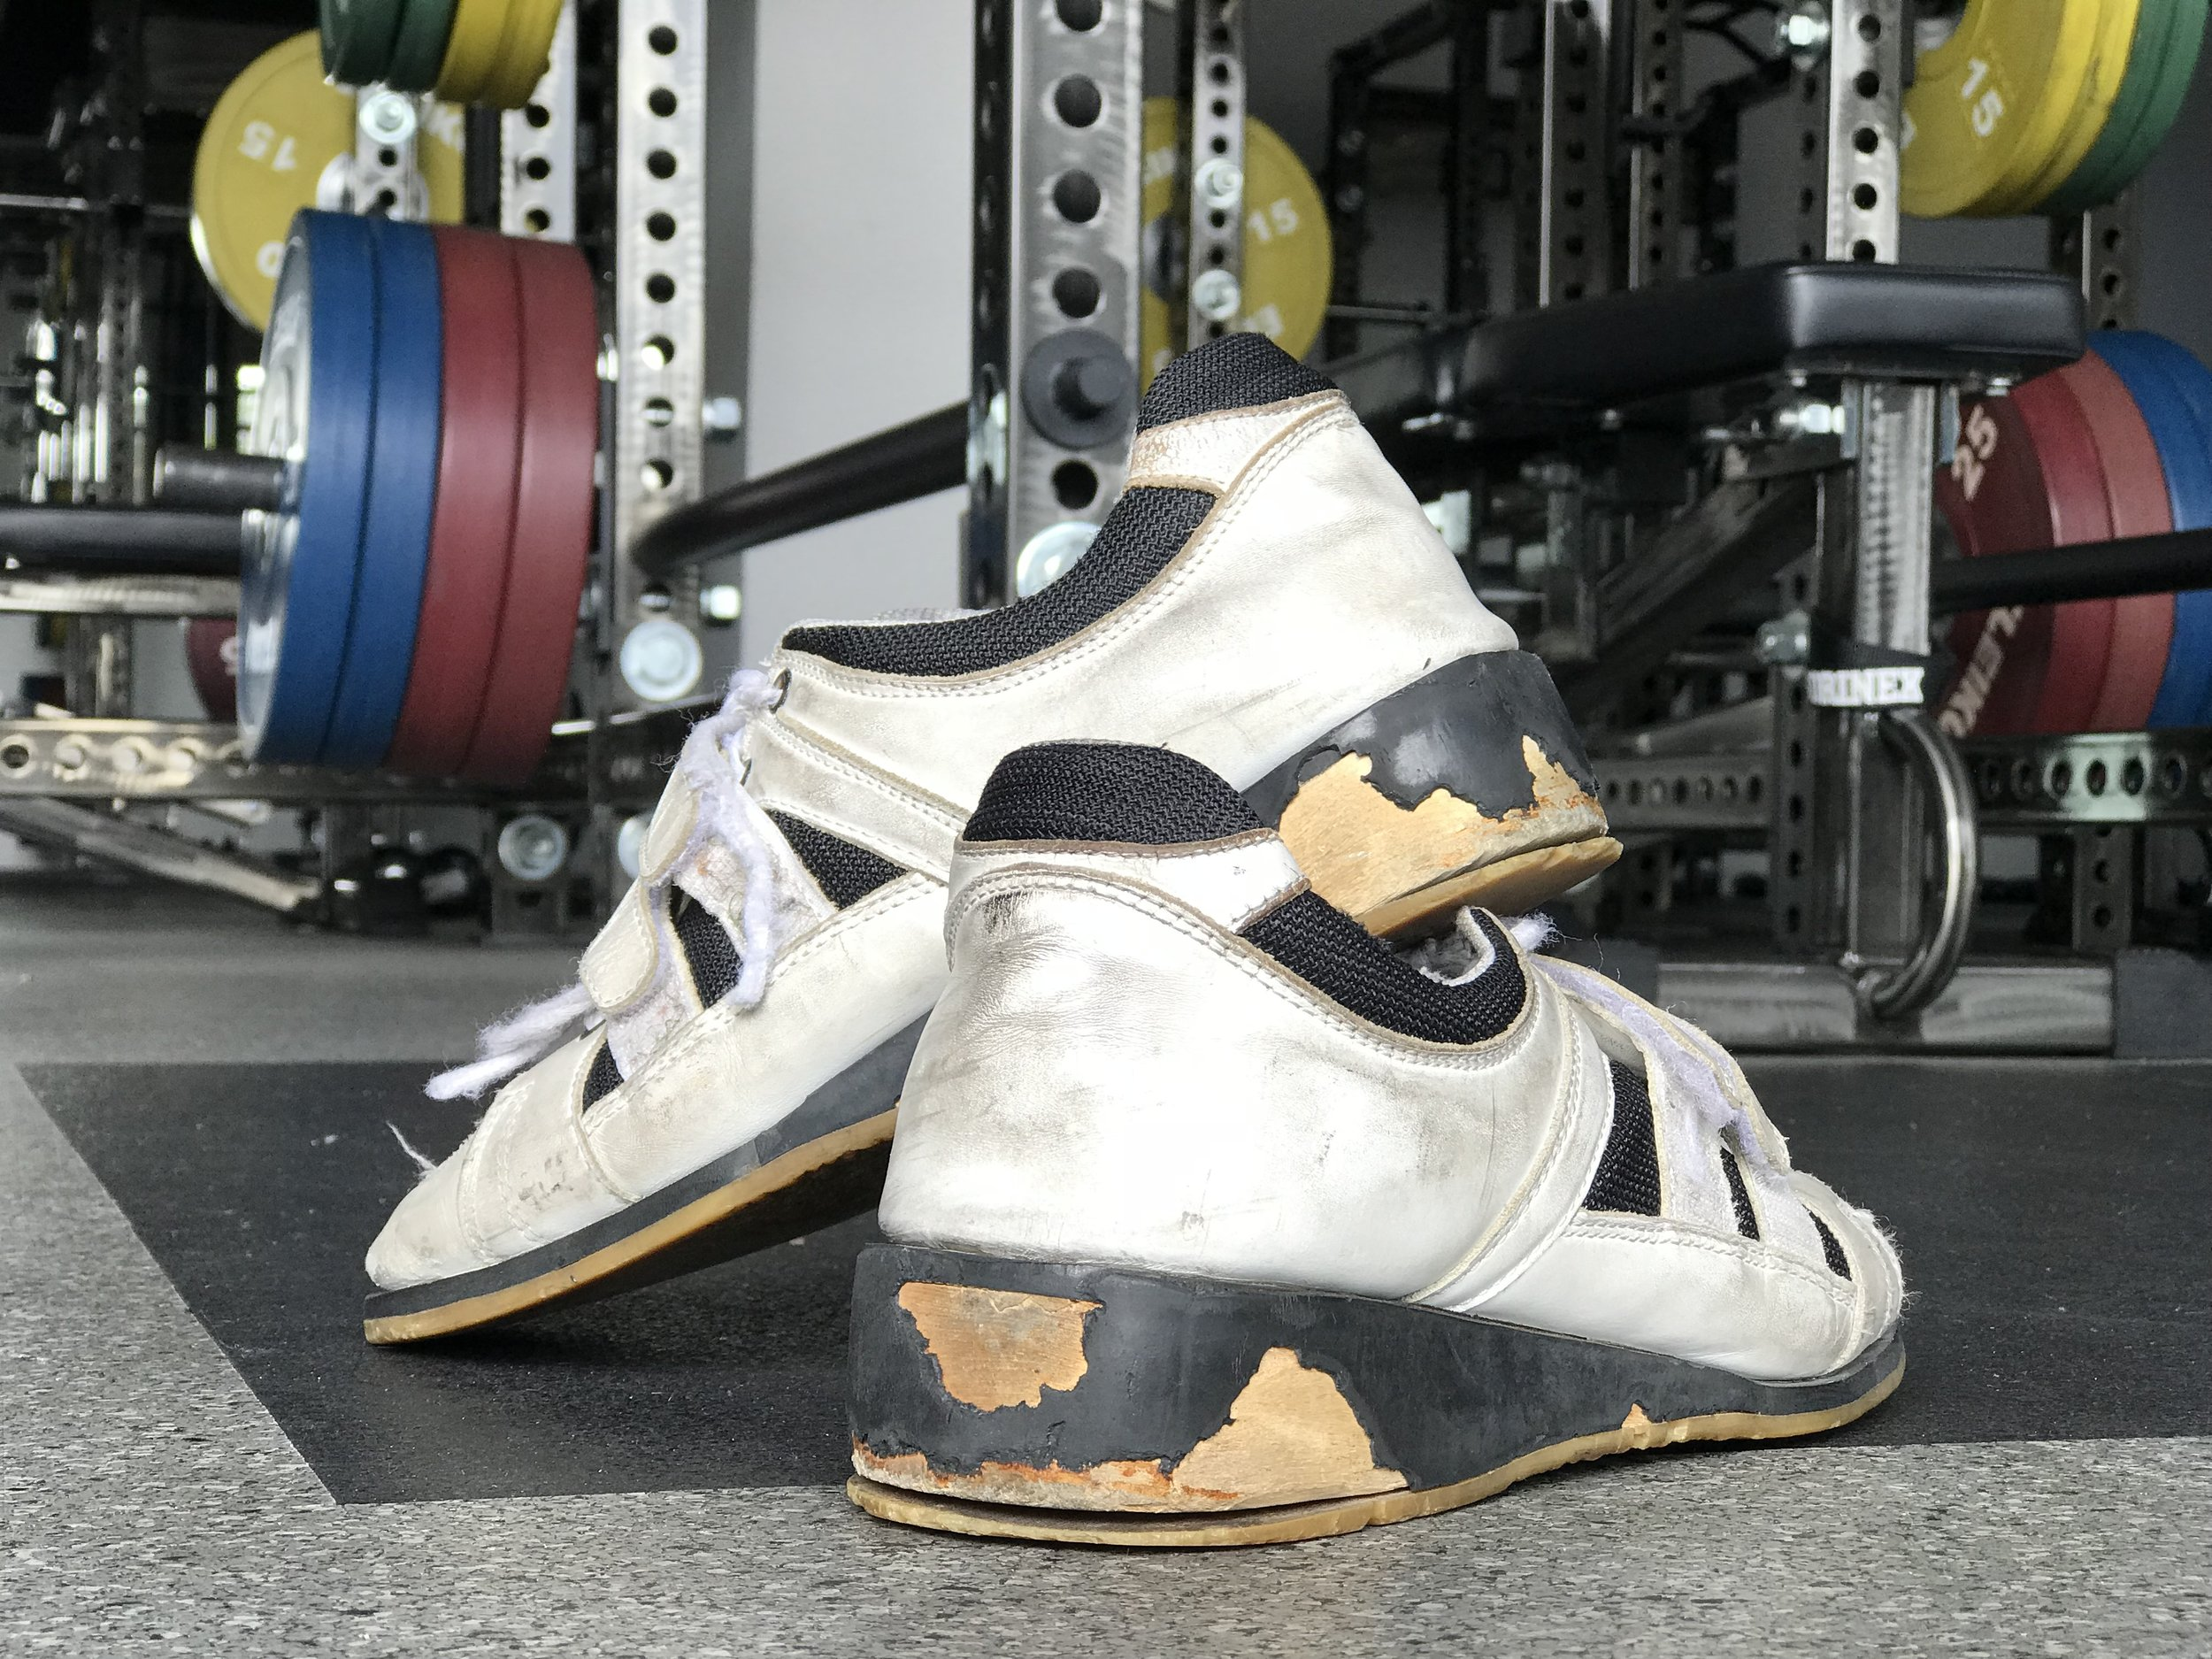 The author's weightlifting shoes. 11 years in the making.